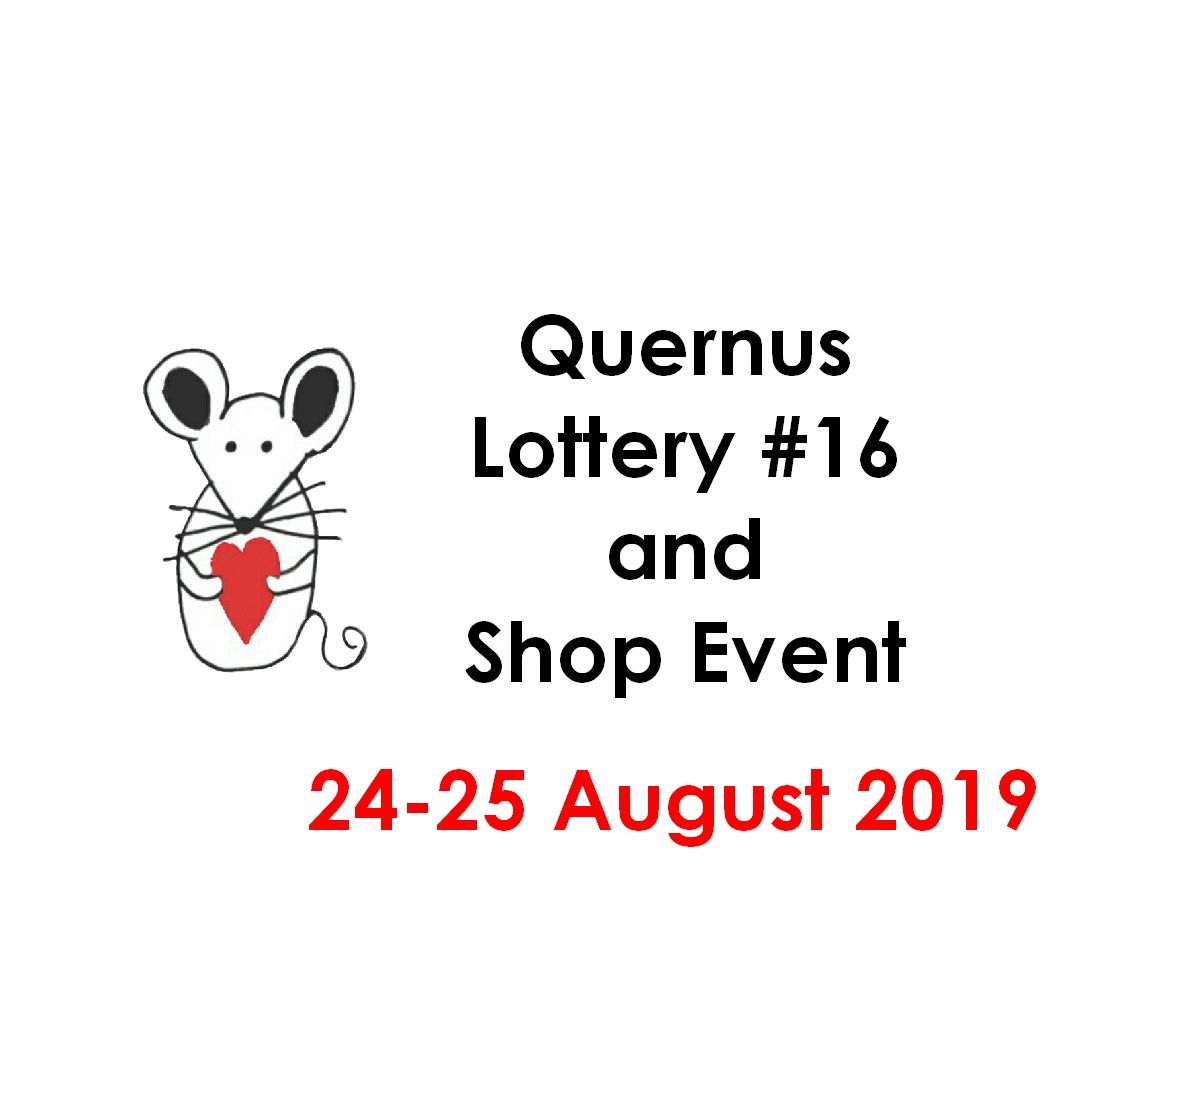 Quernus Lottery #16 and Shop Event